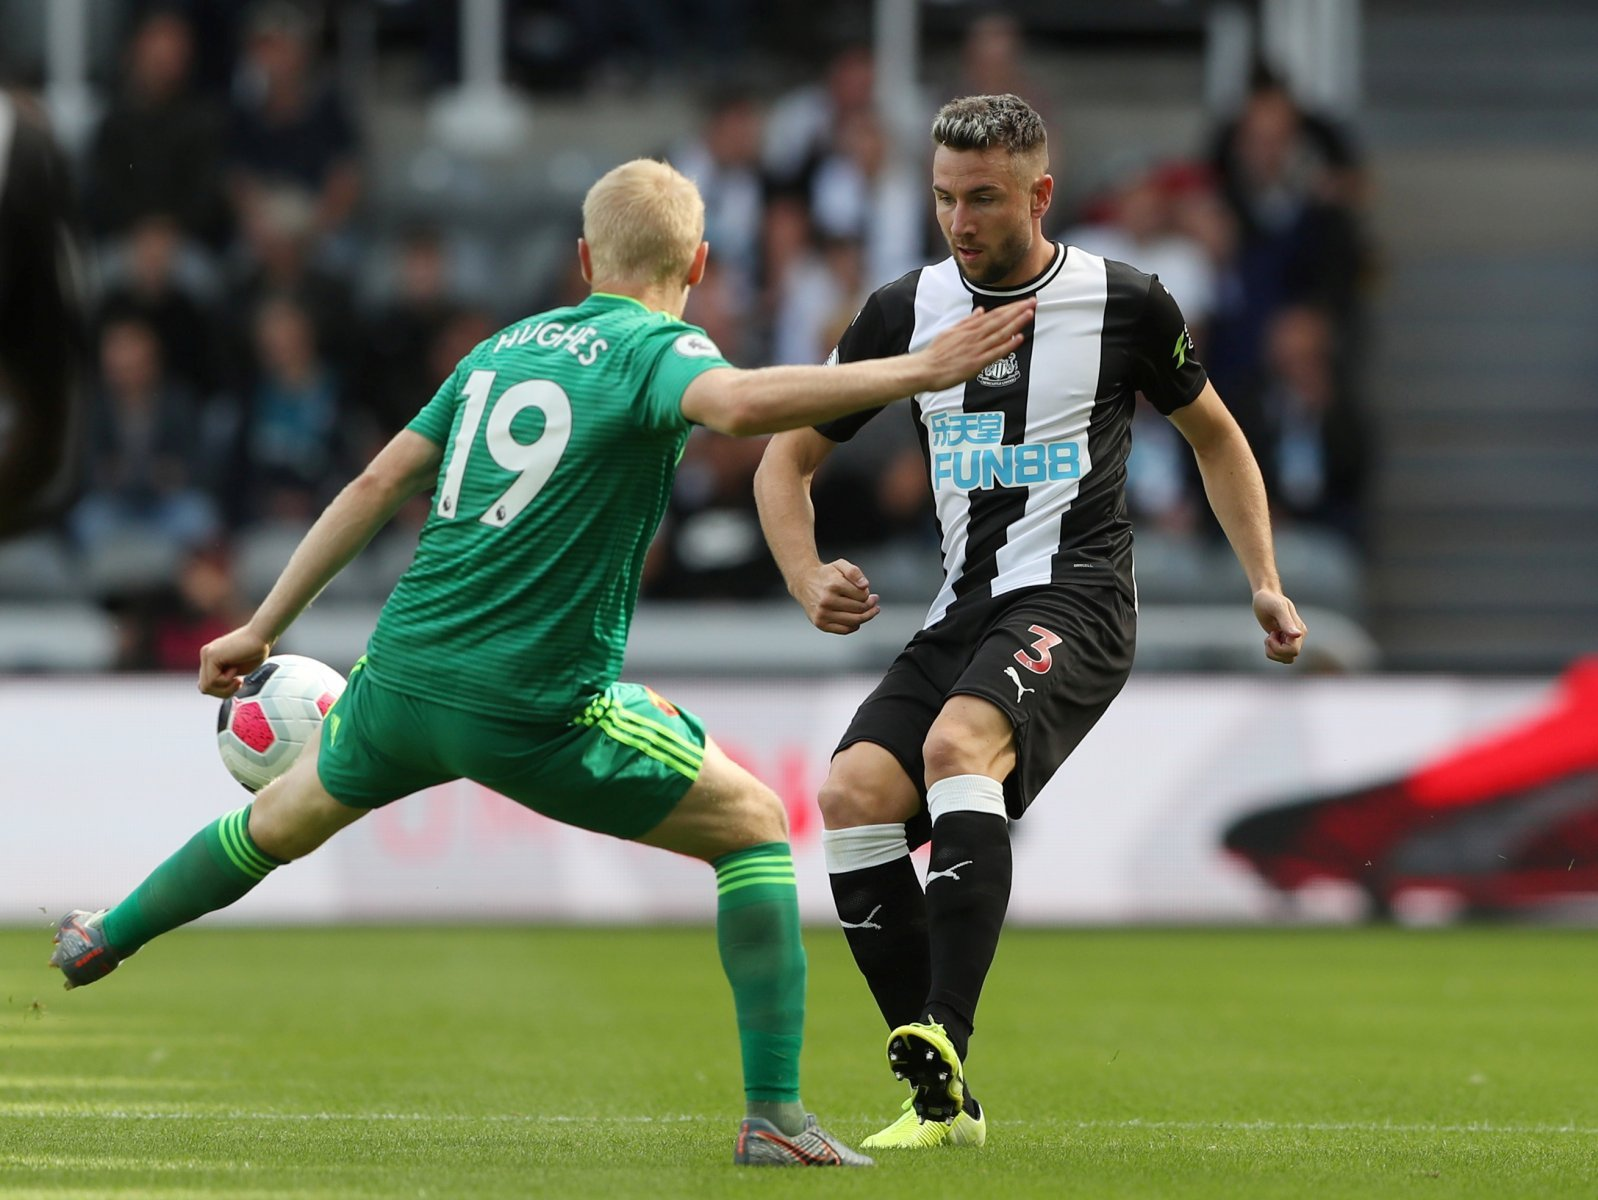 Newcastle: Dummett reveals injury concern led defender to reject Wales call-up